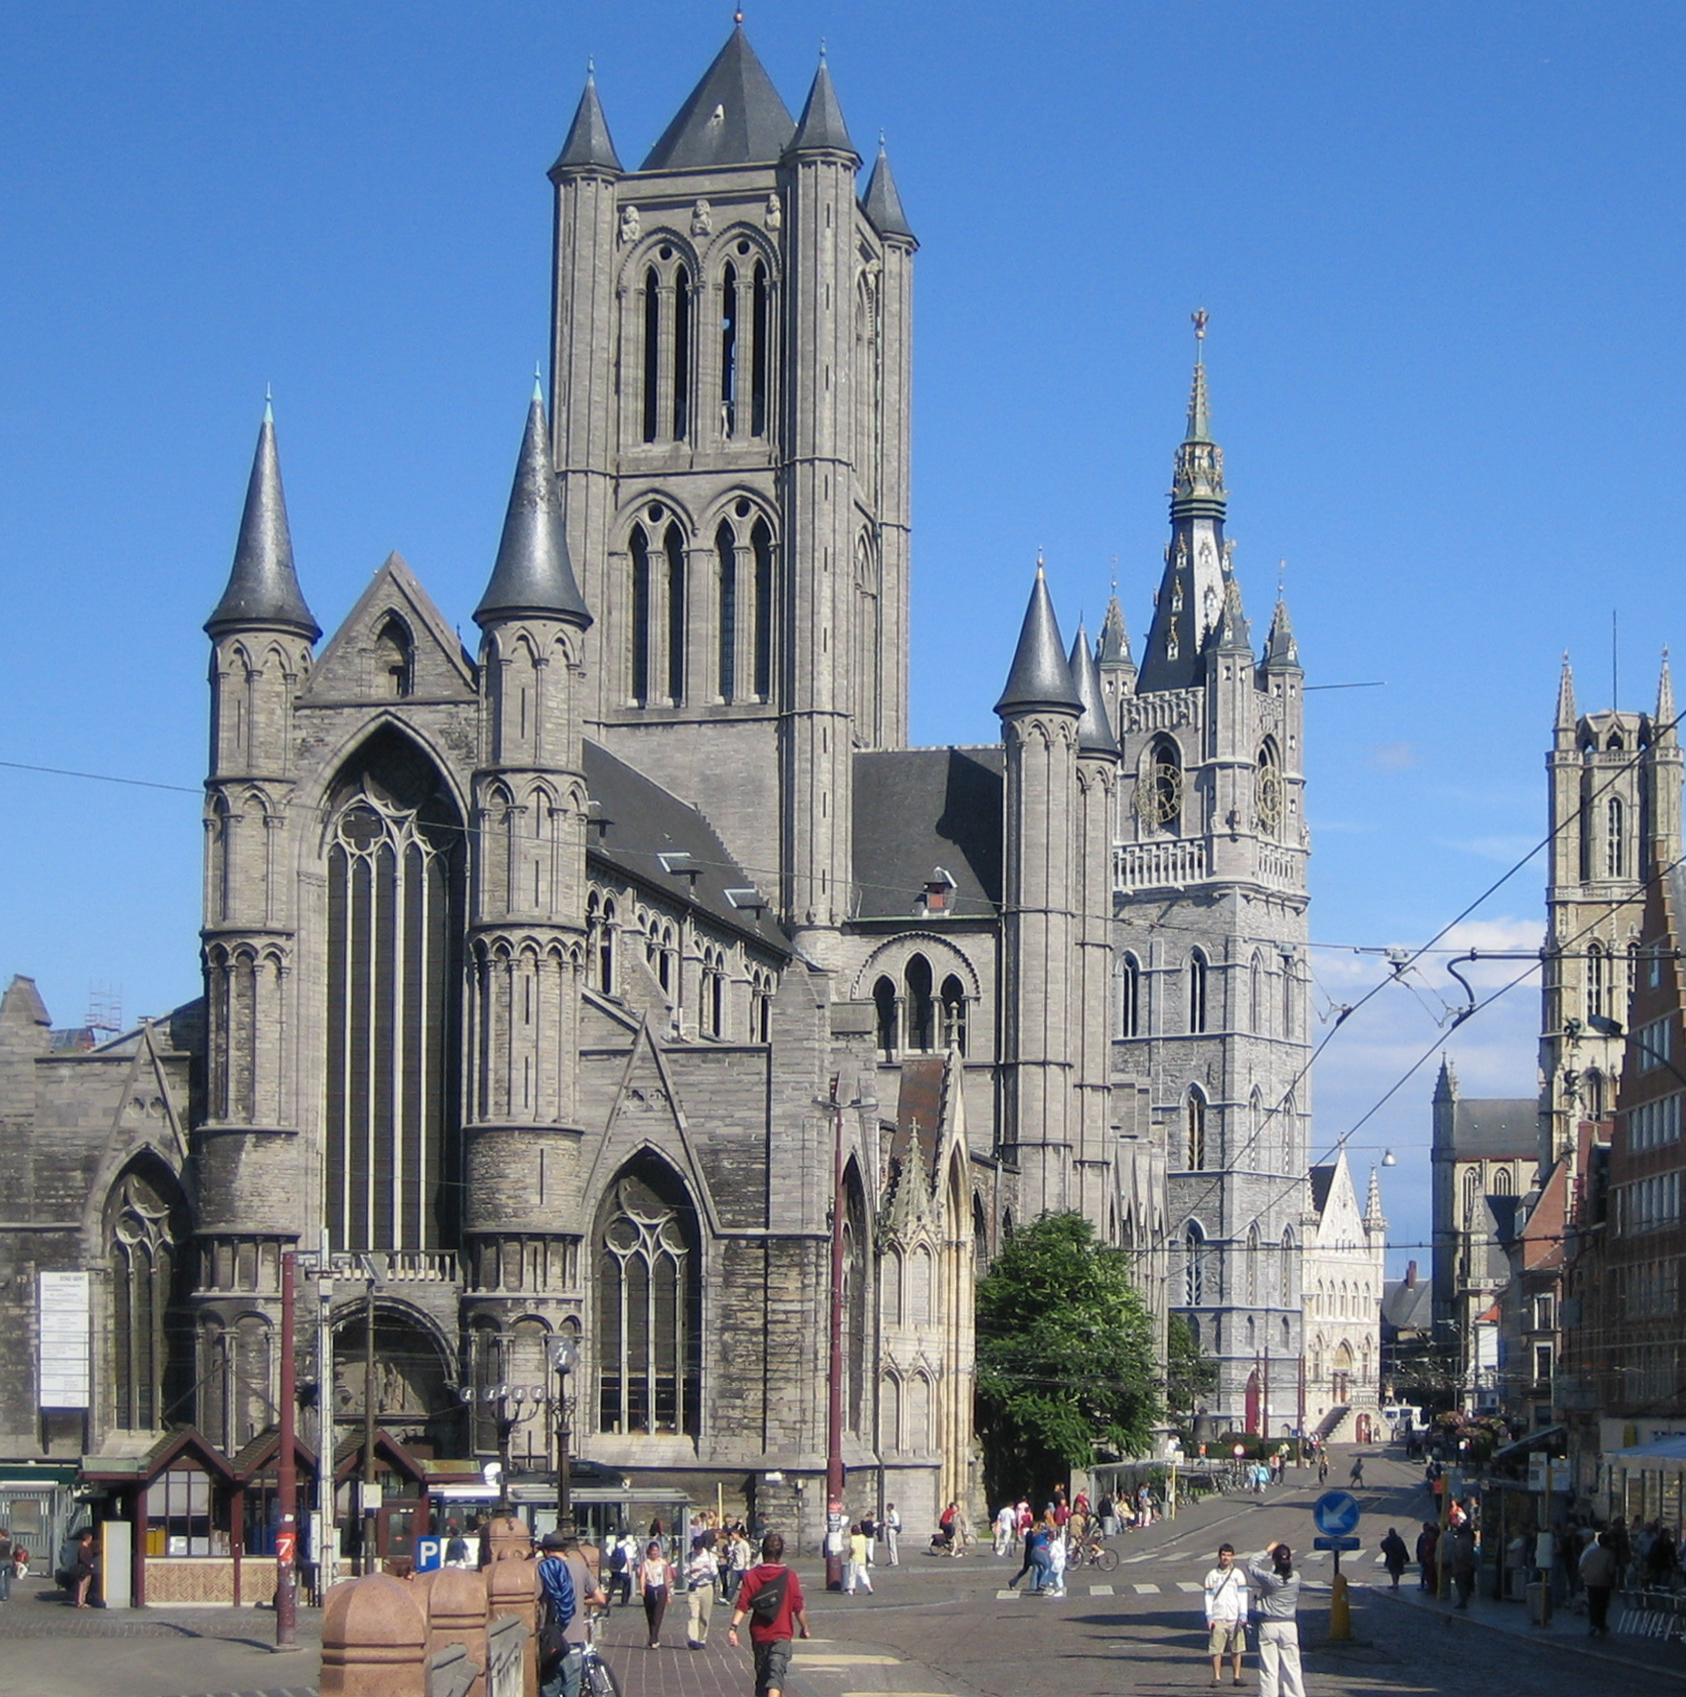 St-Nicolas church, belfry and St. Bavo's cathedral - By  Jiel Beaumadier  -  Source